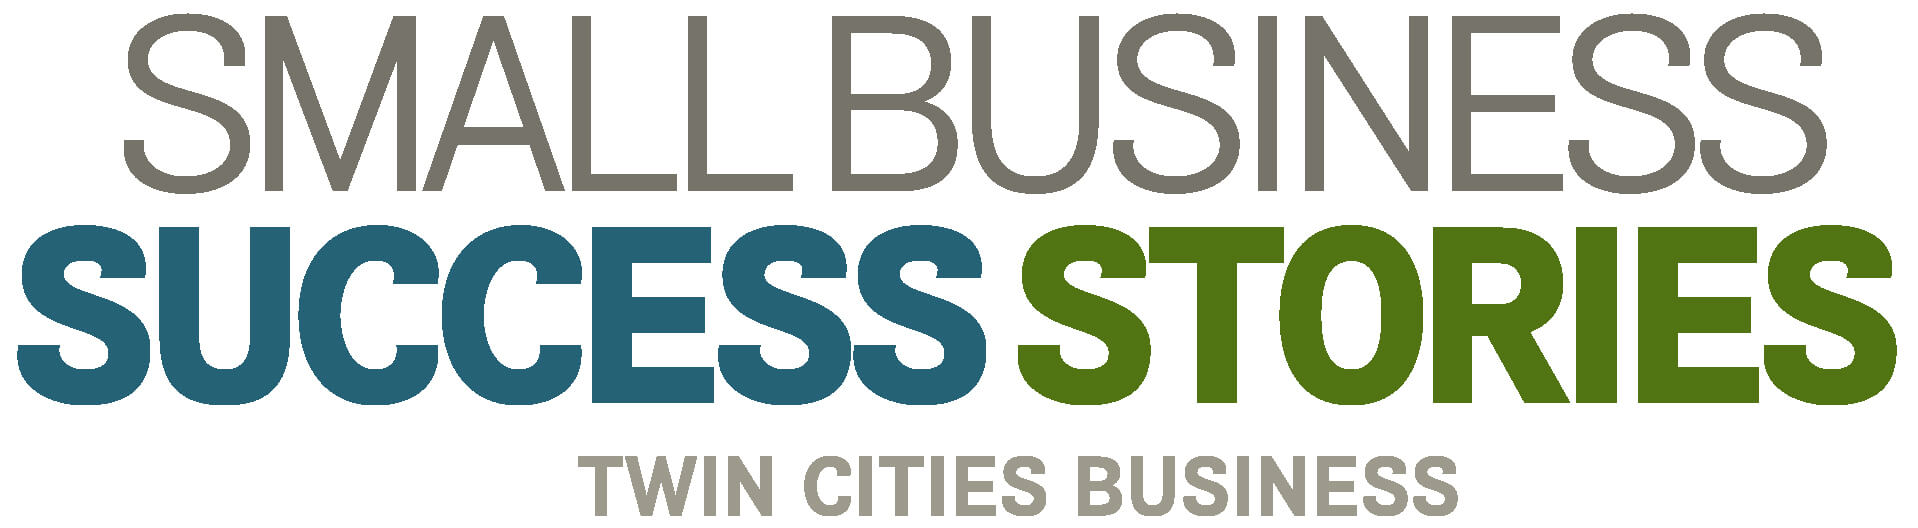 Award for Twin Cities Small Business Success Stories